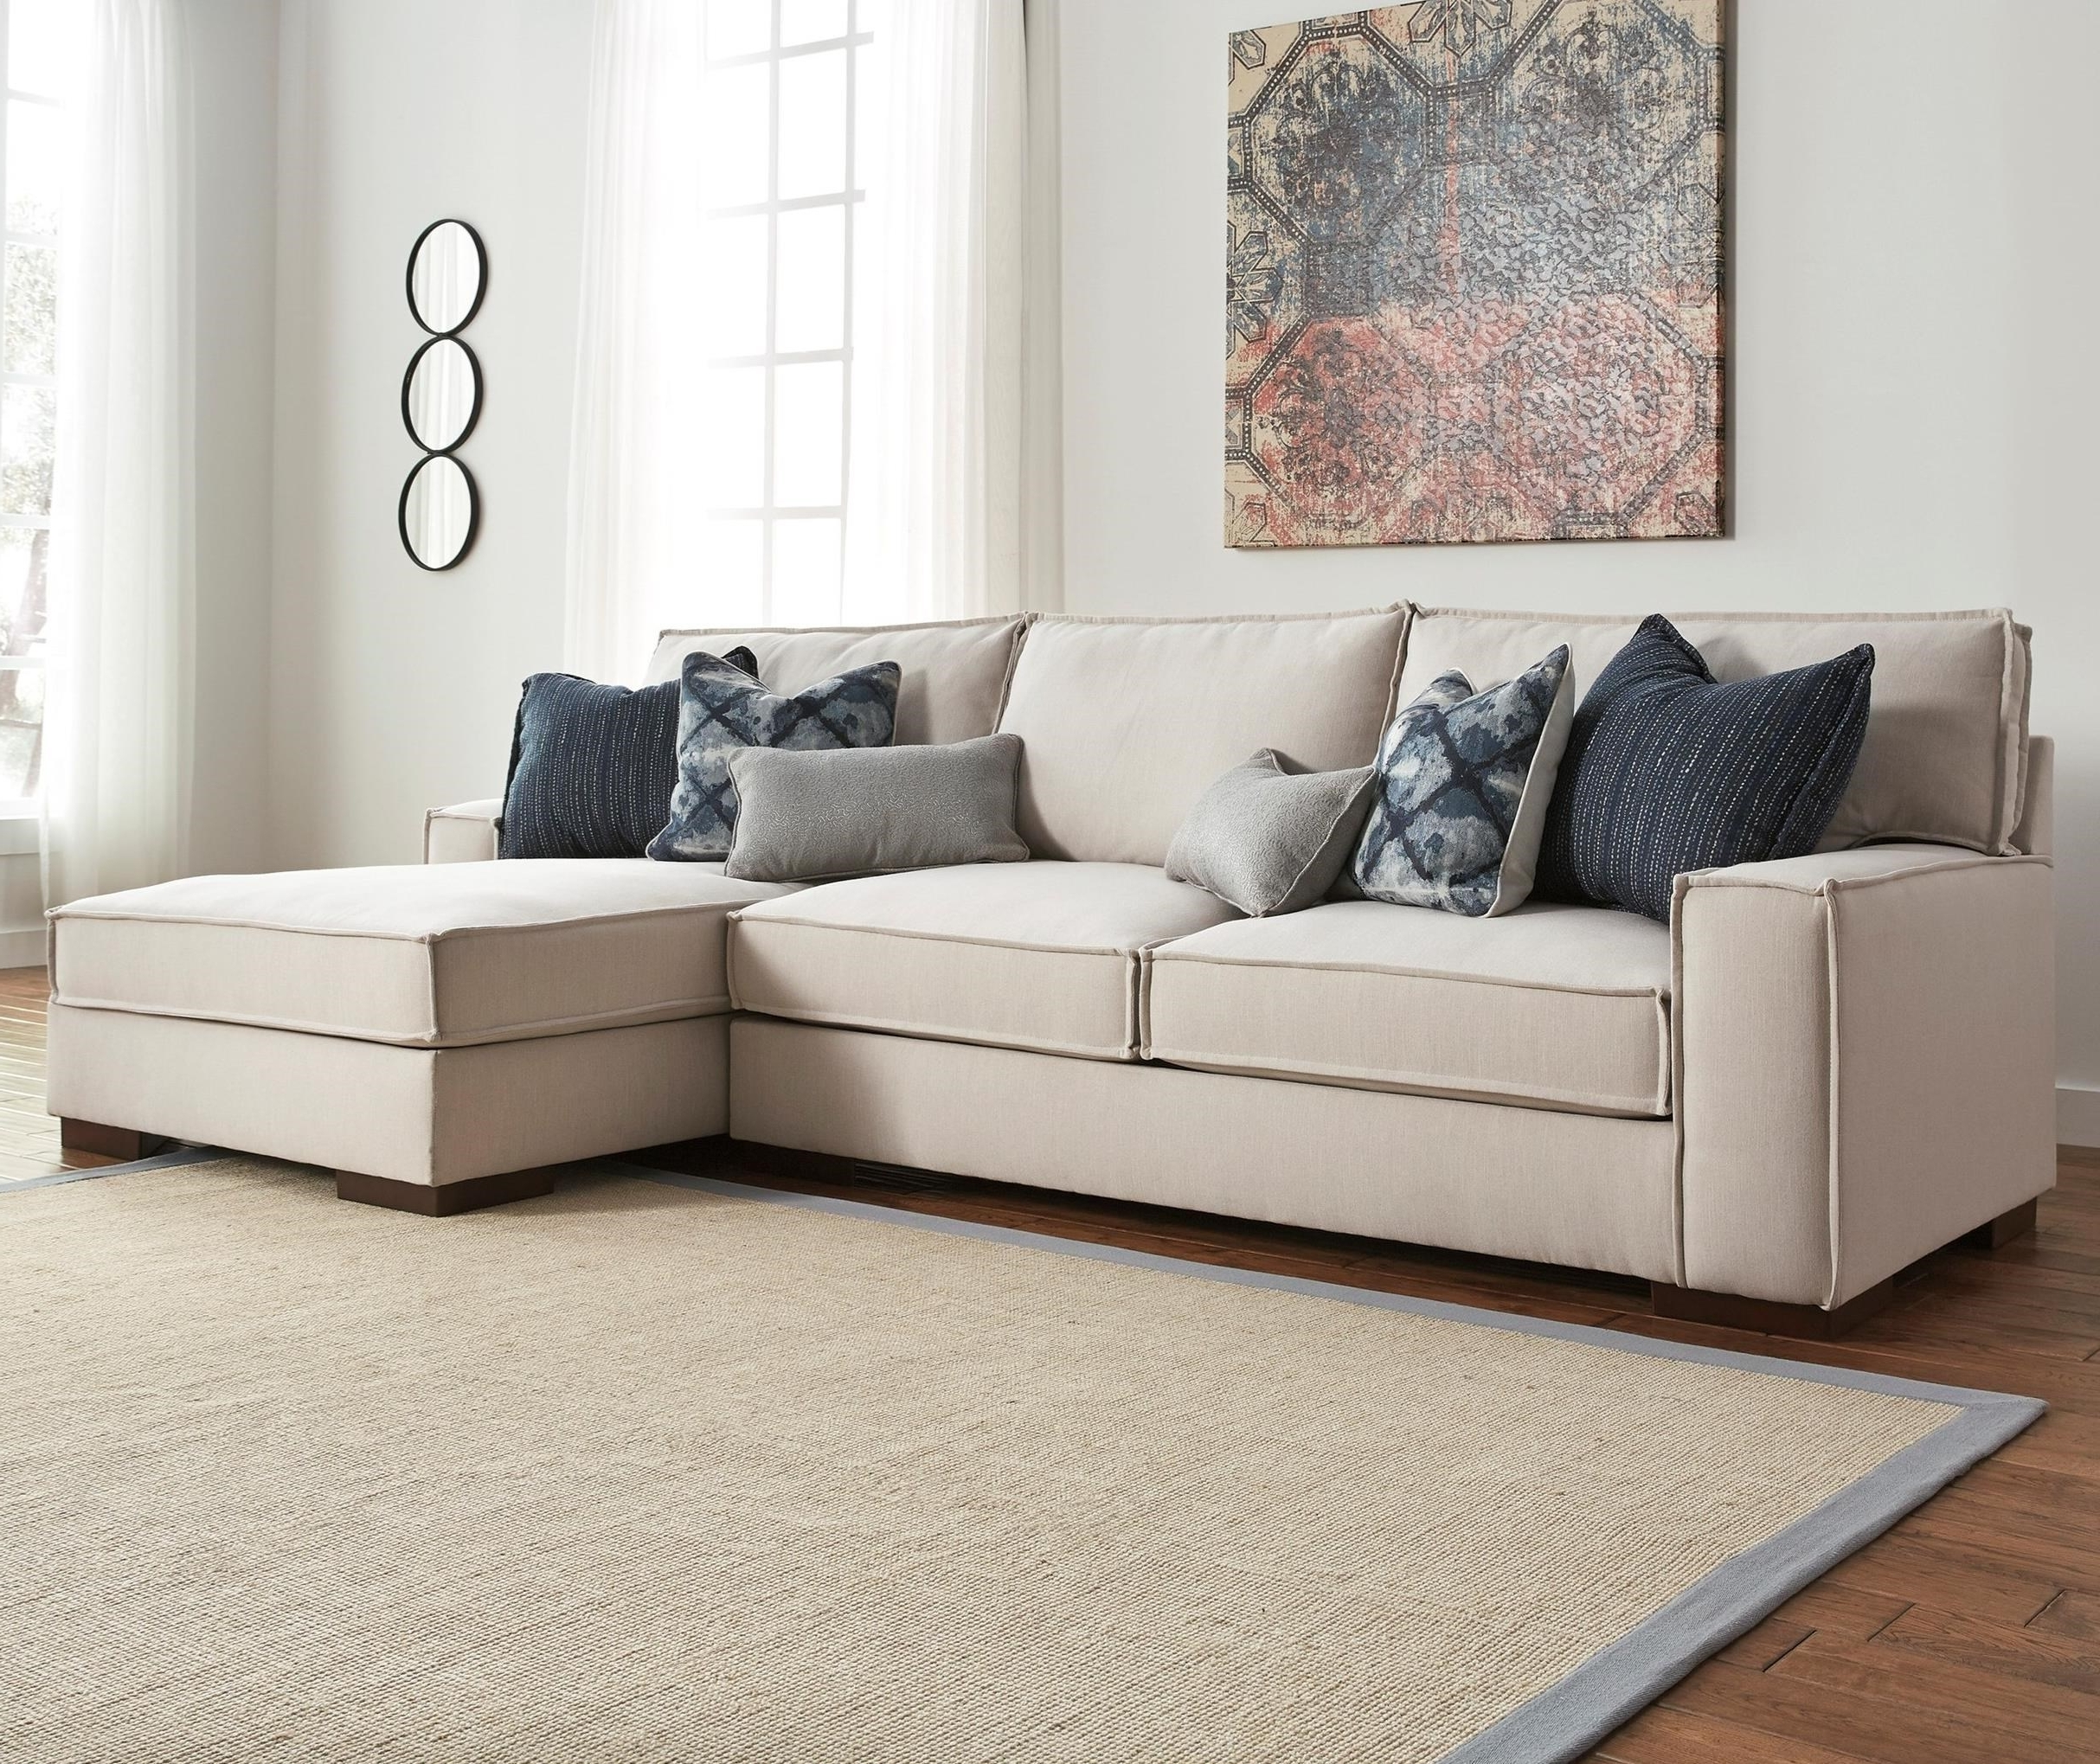 Benchcraft Kendleton Modern 2 Piece Sectional With Right Chaise With Regard To 2018 2 Piece Sectionals With Chaise (View 5 of 15)